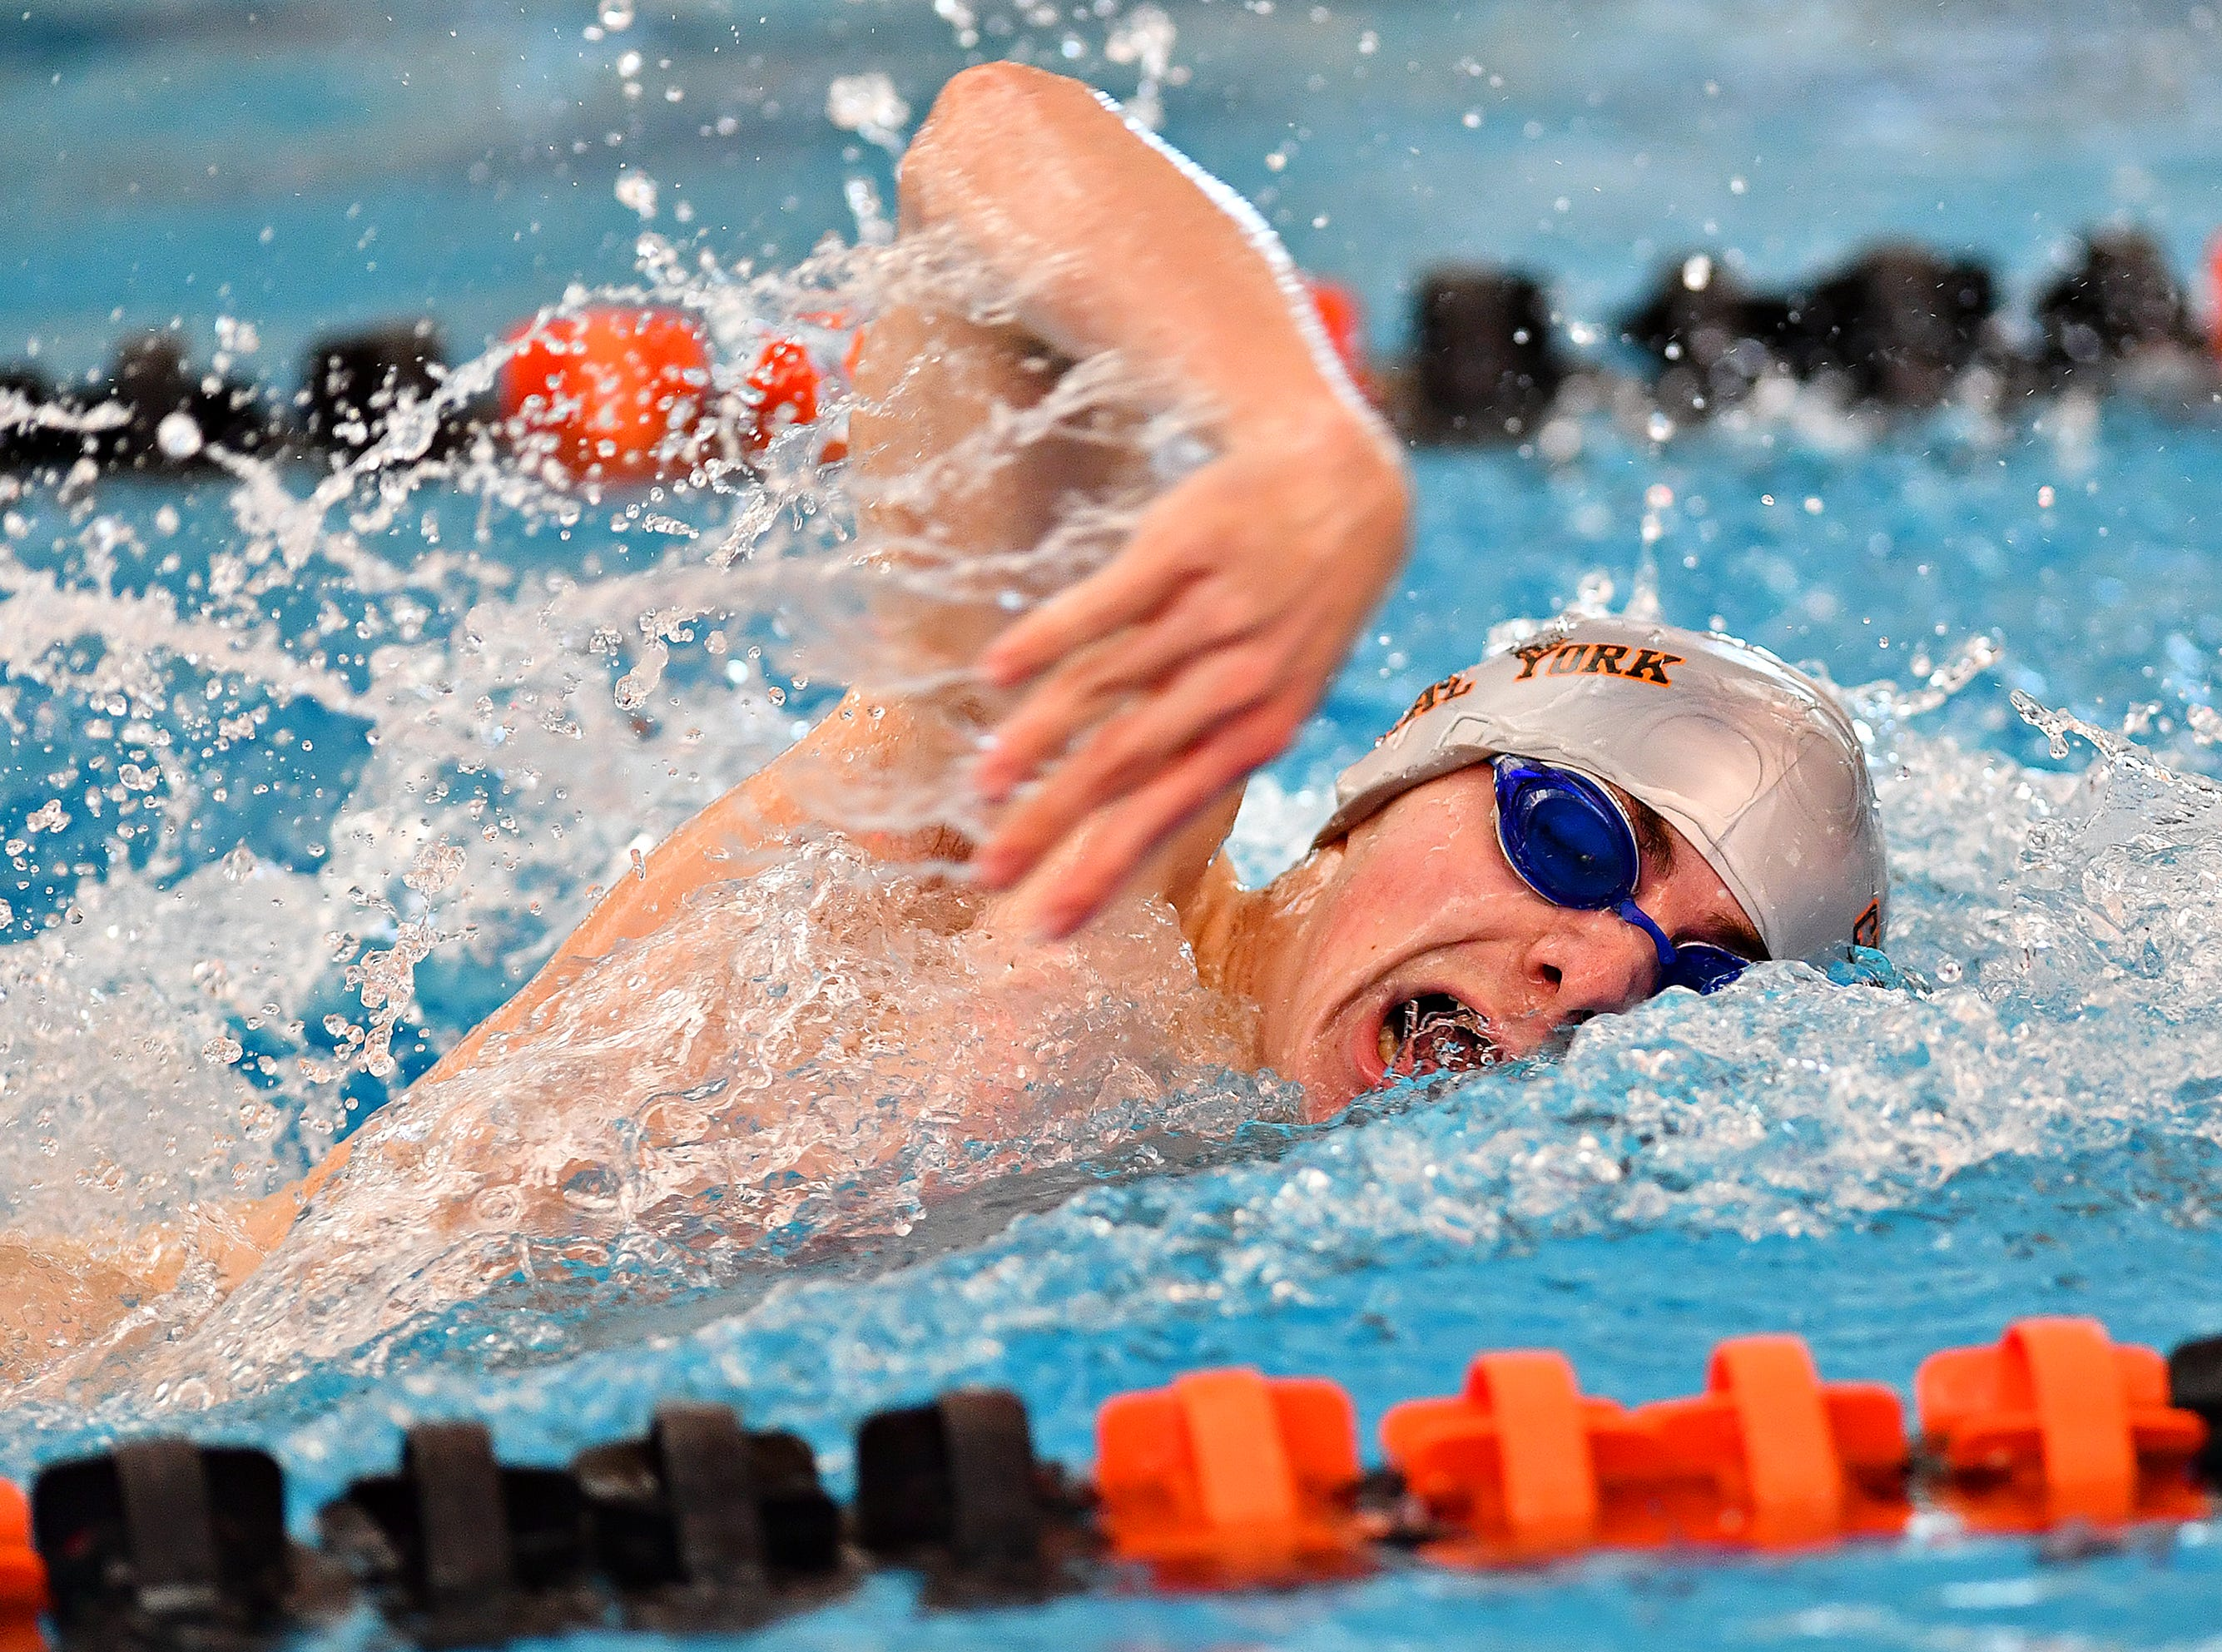 Central York's Lucas Tate competes in the 400 Yard Freestyle Relay event during the York-Adams League Swimming Championship at Central York High School in Springettsbury Township, Saturday, Feb. 9, 2019. Dawn J. Sagert photo